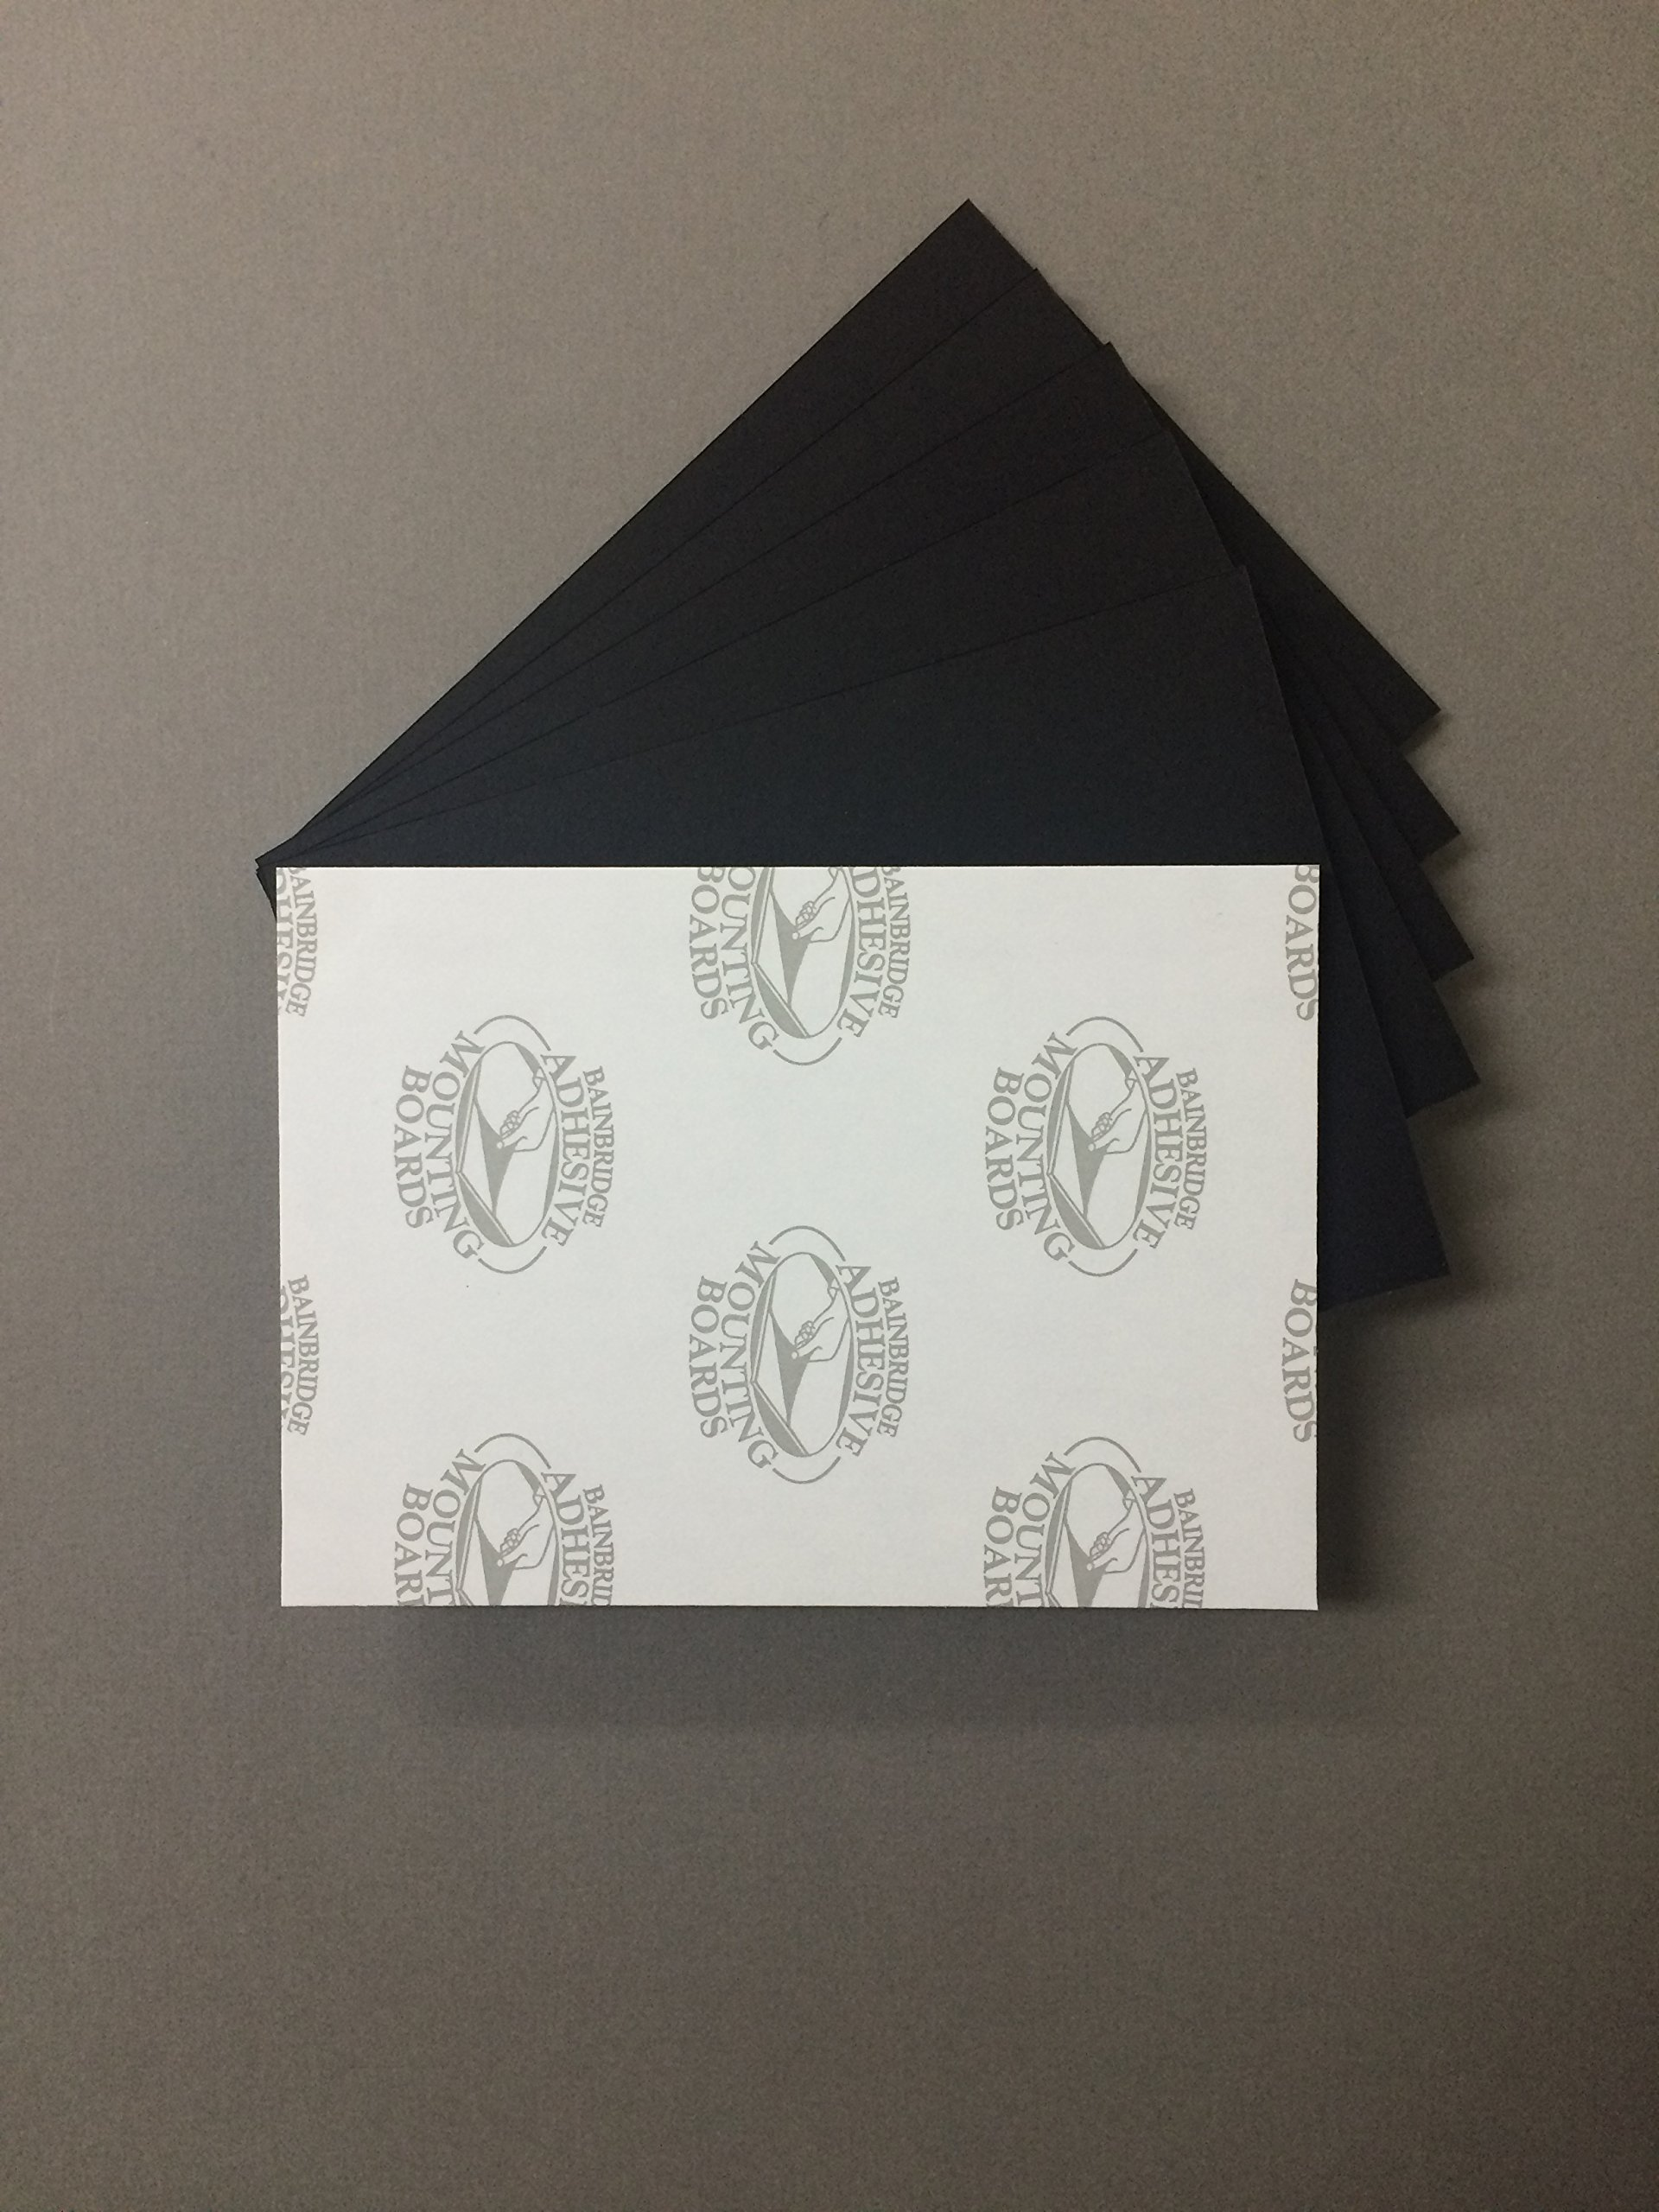 Pack of 10 8x10 3/16'' Black Self Adhesive Foam Core Backings by bux1 picture matting